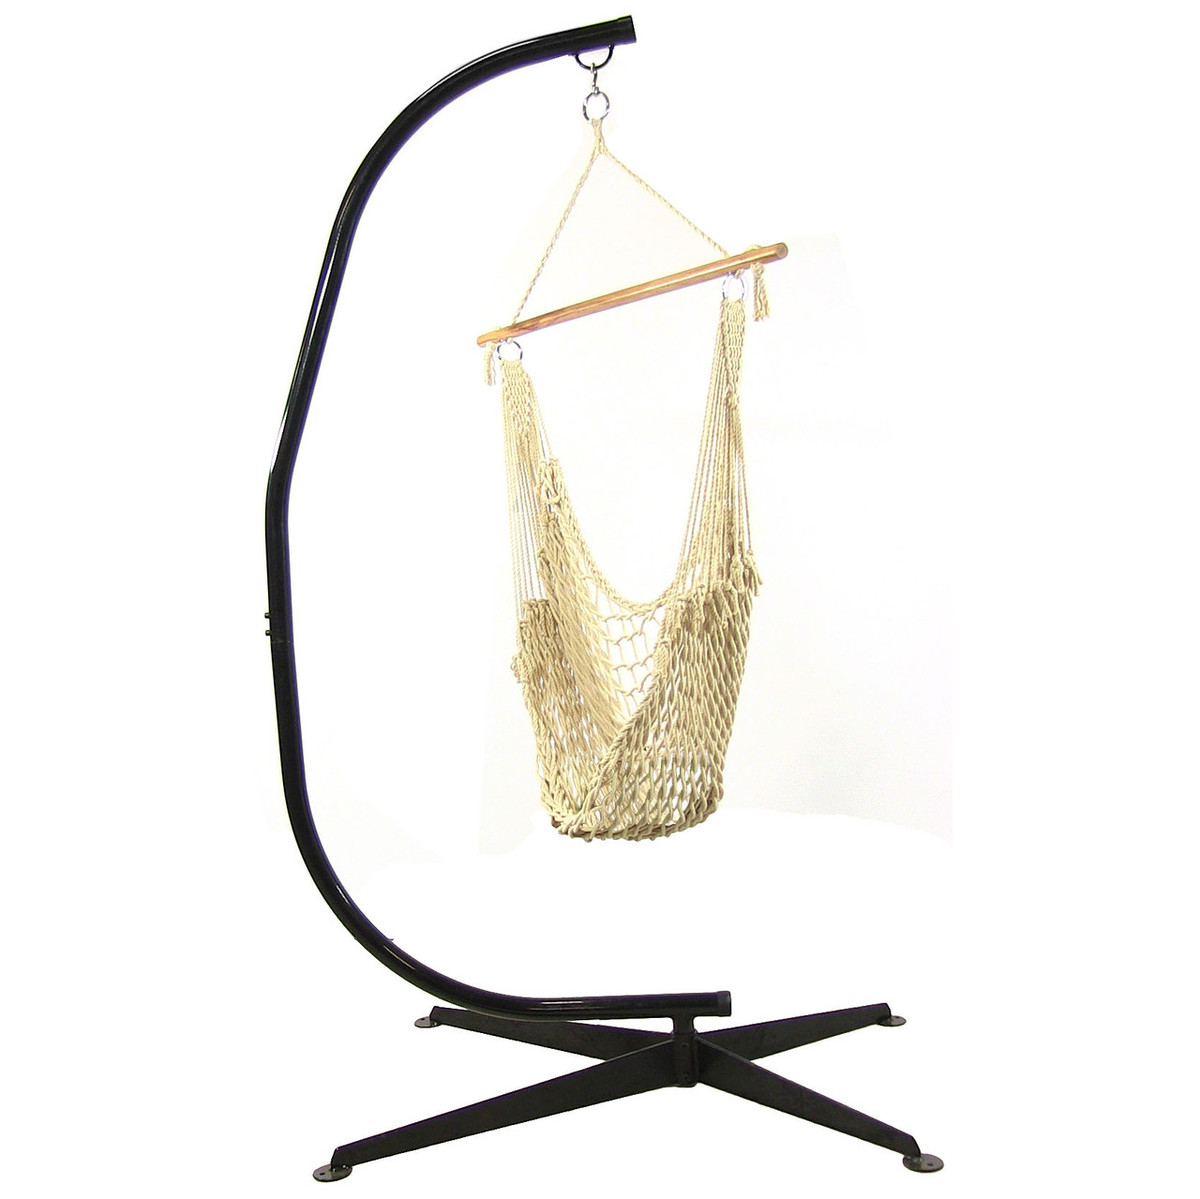 Sunnydaze Cotton Rope Hanging Hammock Chair Swing With C Stand, 48 Inch  Wide Seat, Max Weight: 300 Pounds